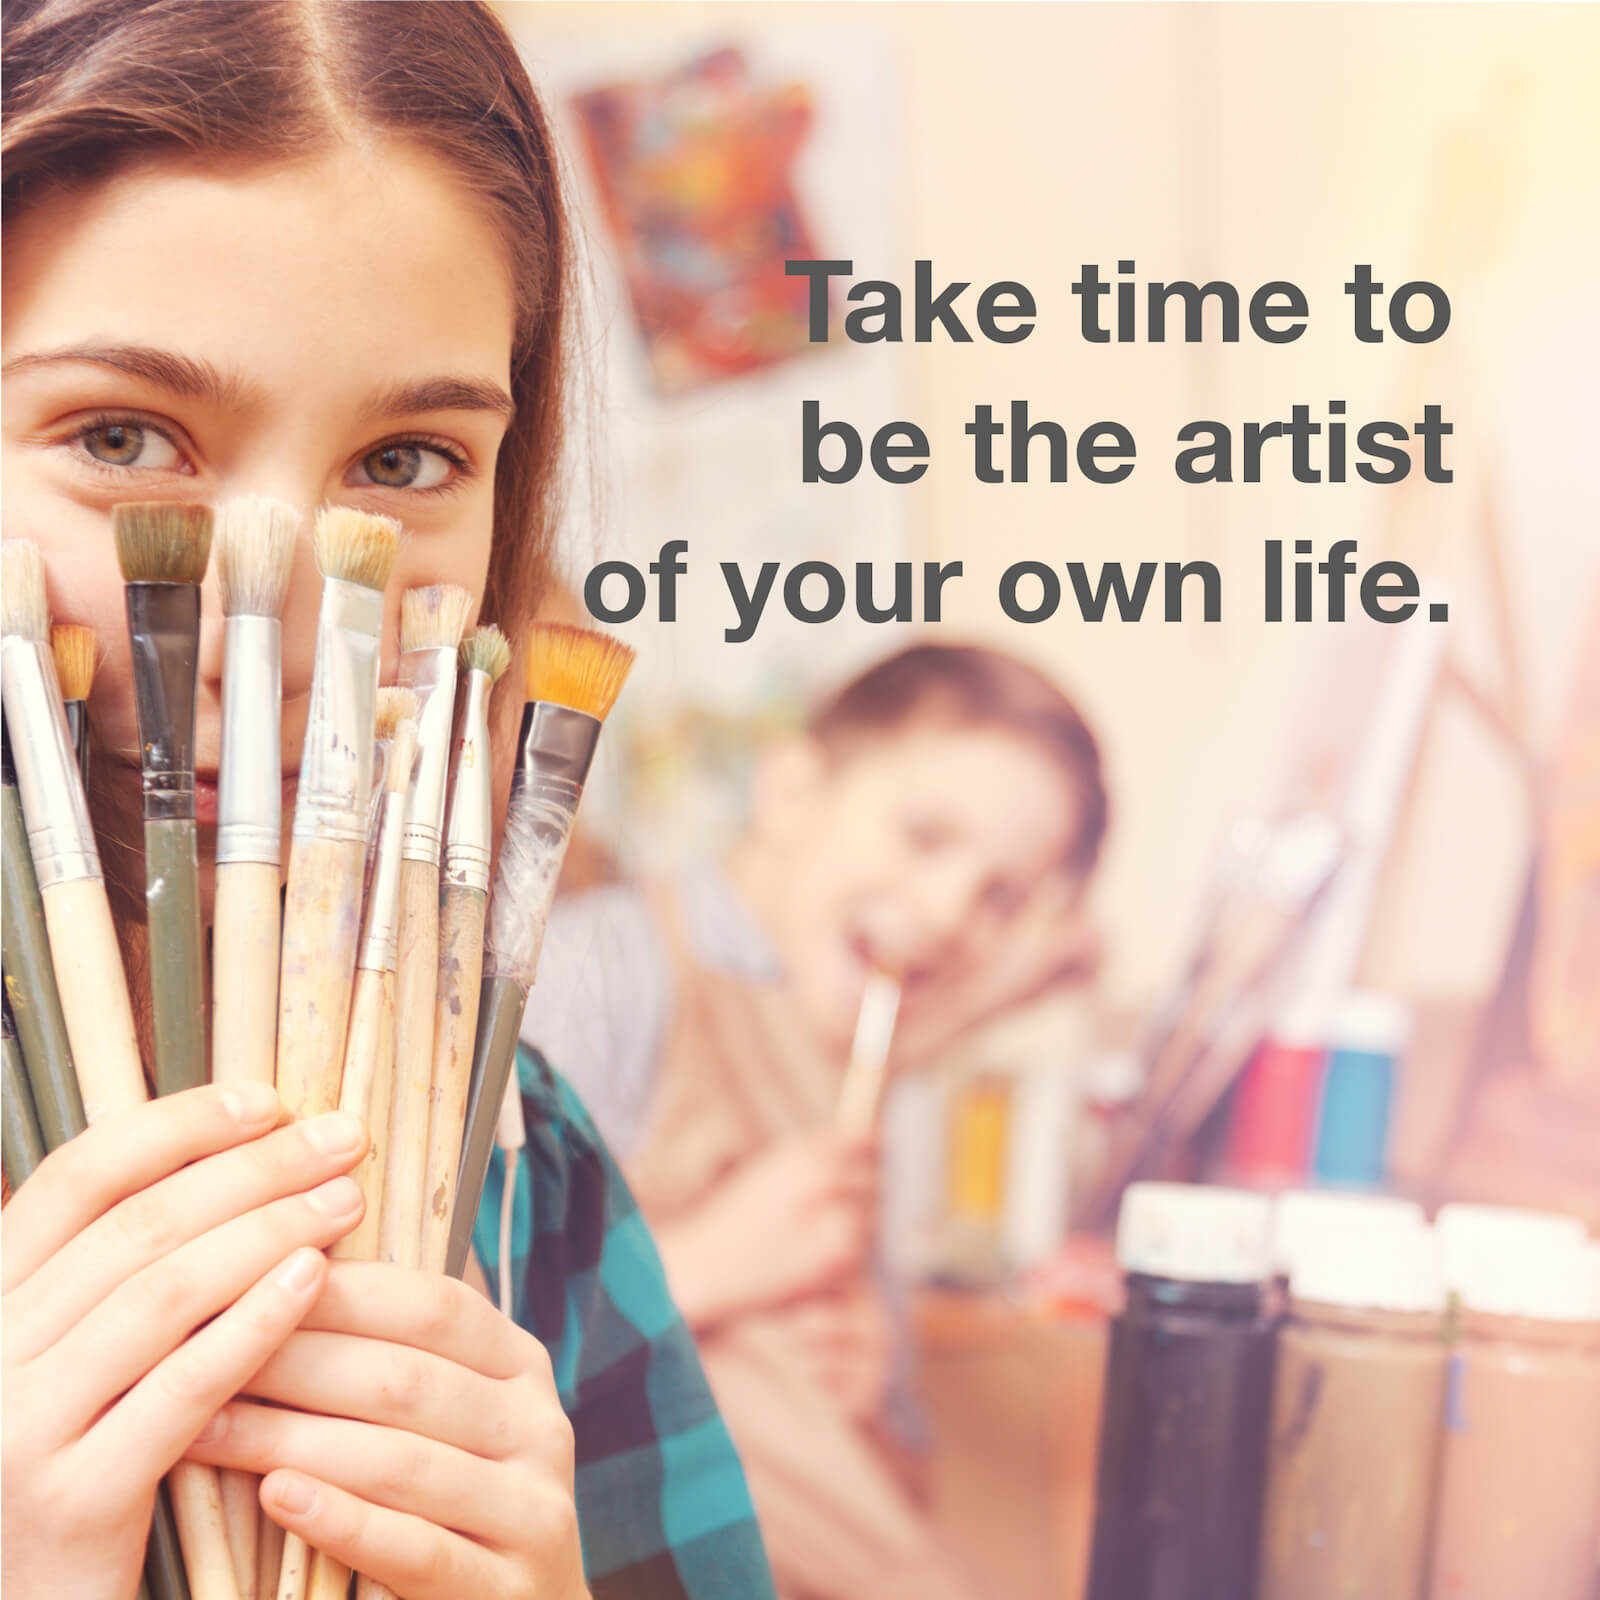 You are the desinger of your own future. Be creative.